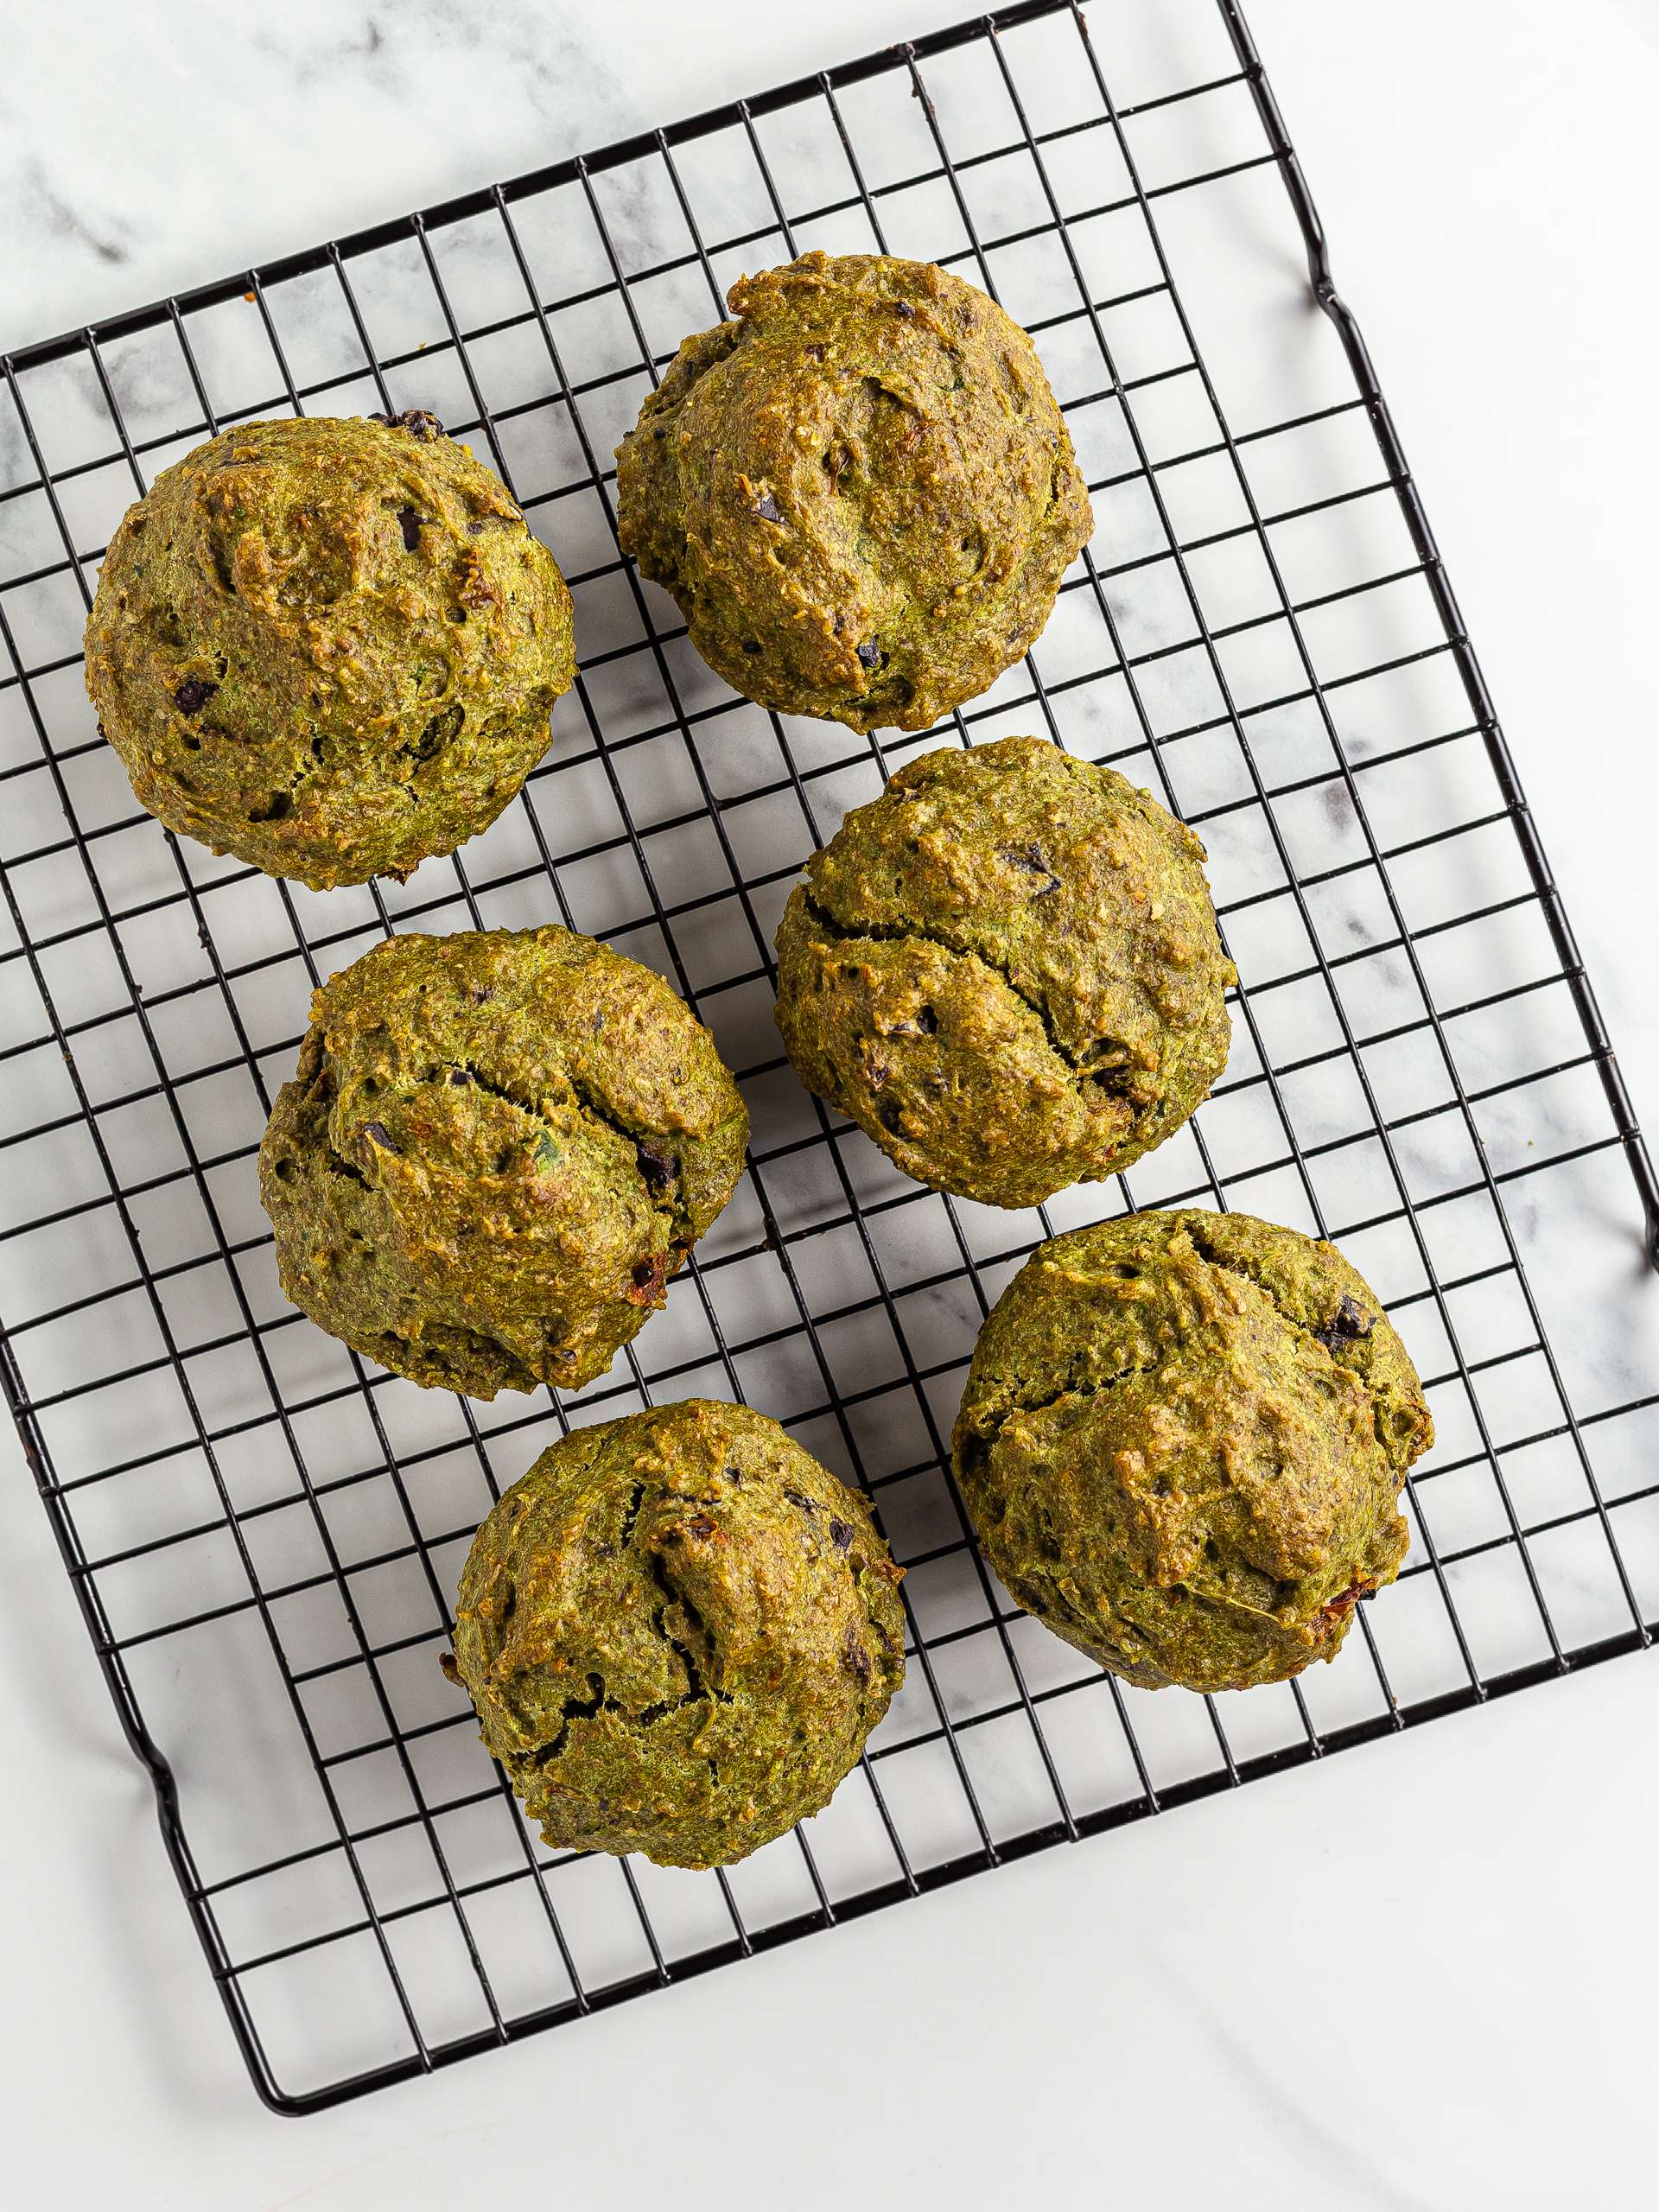 baked savoury muffins on a tray